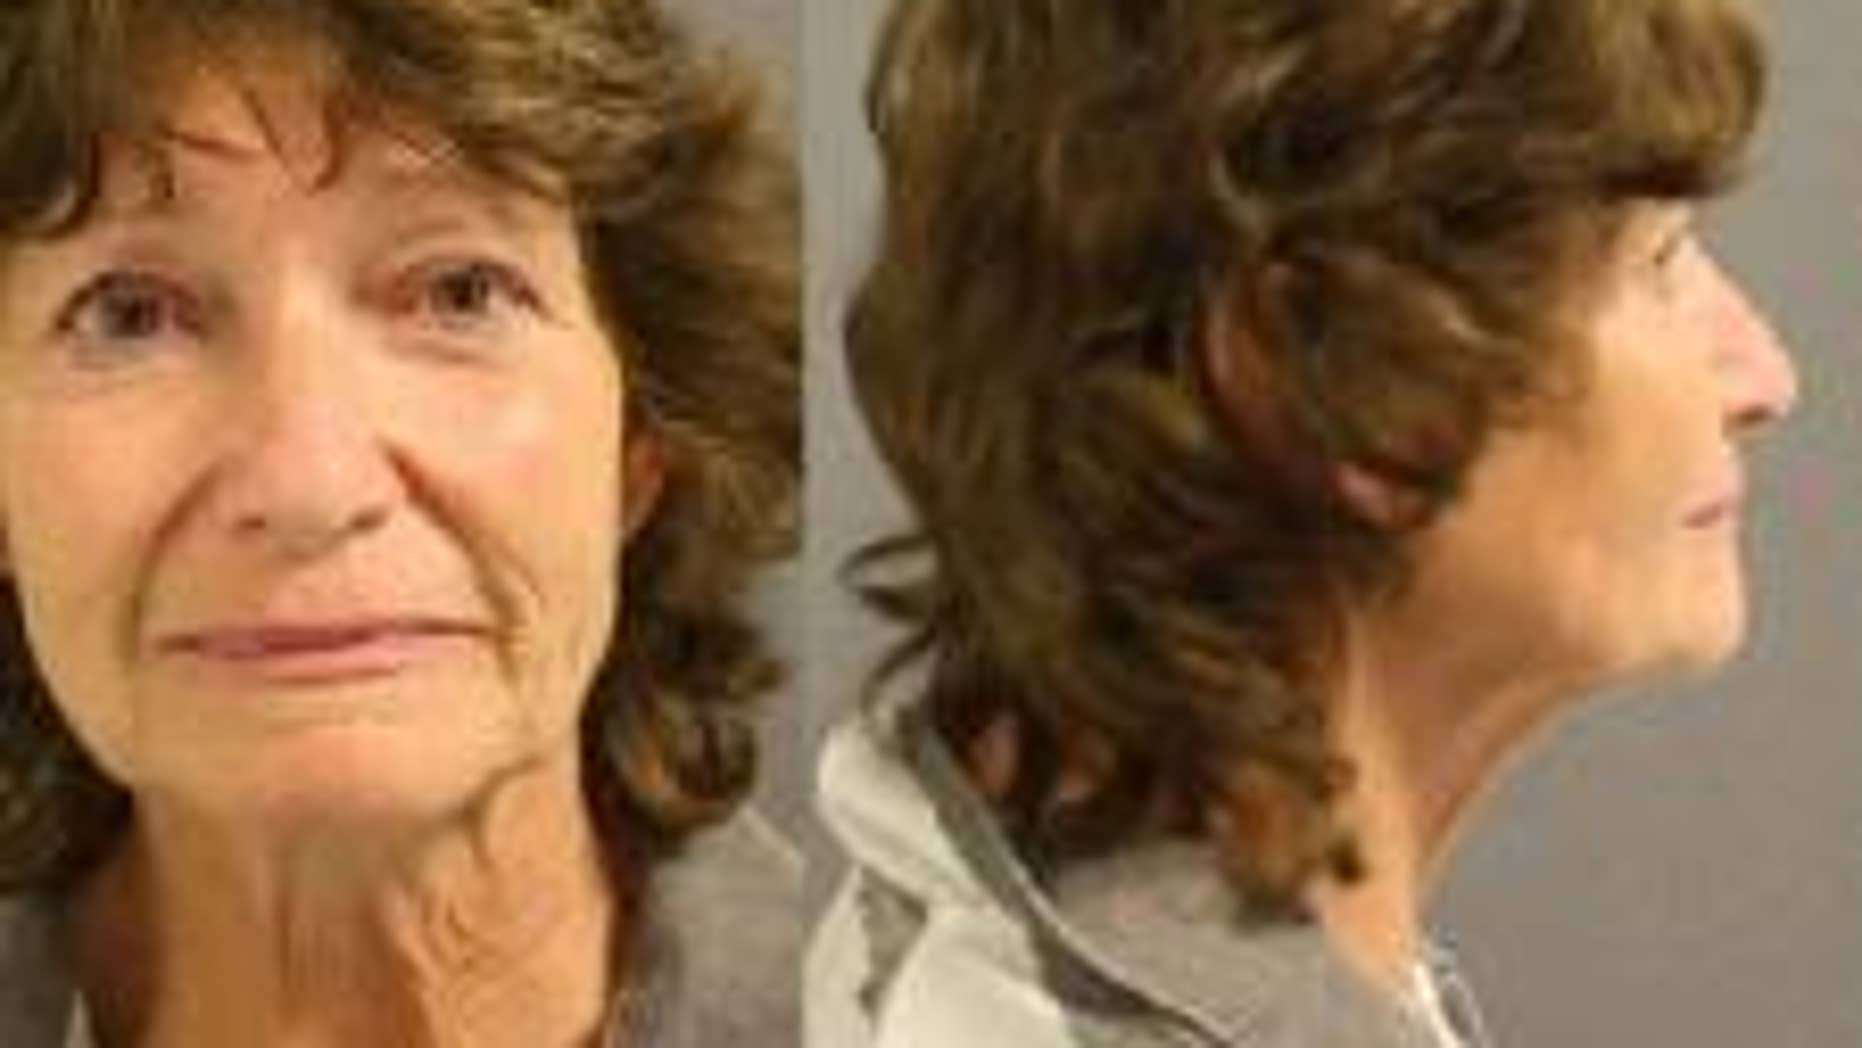 Linda Dwire, 64, was arrested on a harassment charge on Monday. She was captured on video in a verbal confrontation with another shopper defending two Spanish-speaking women.